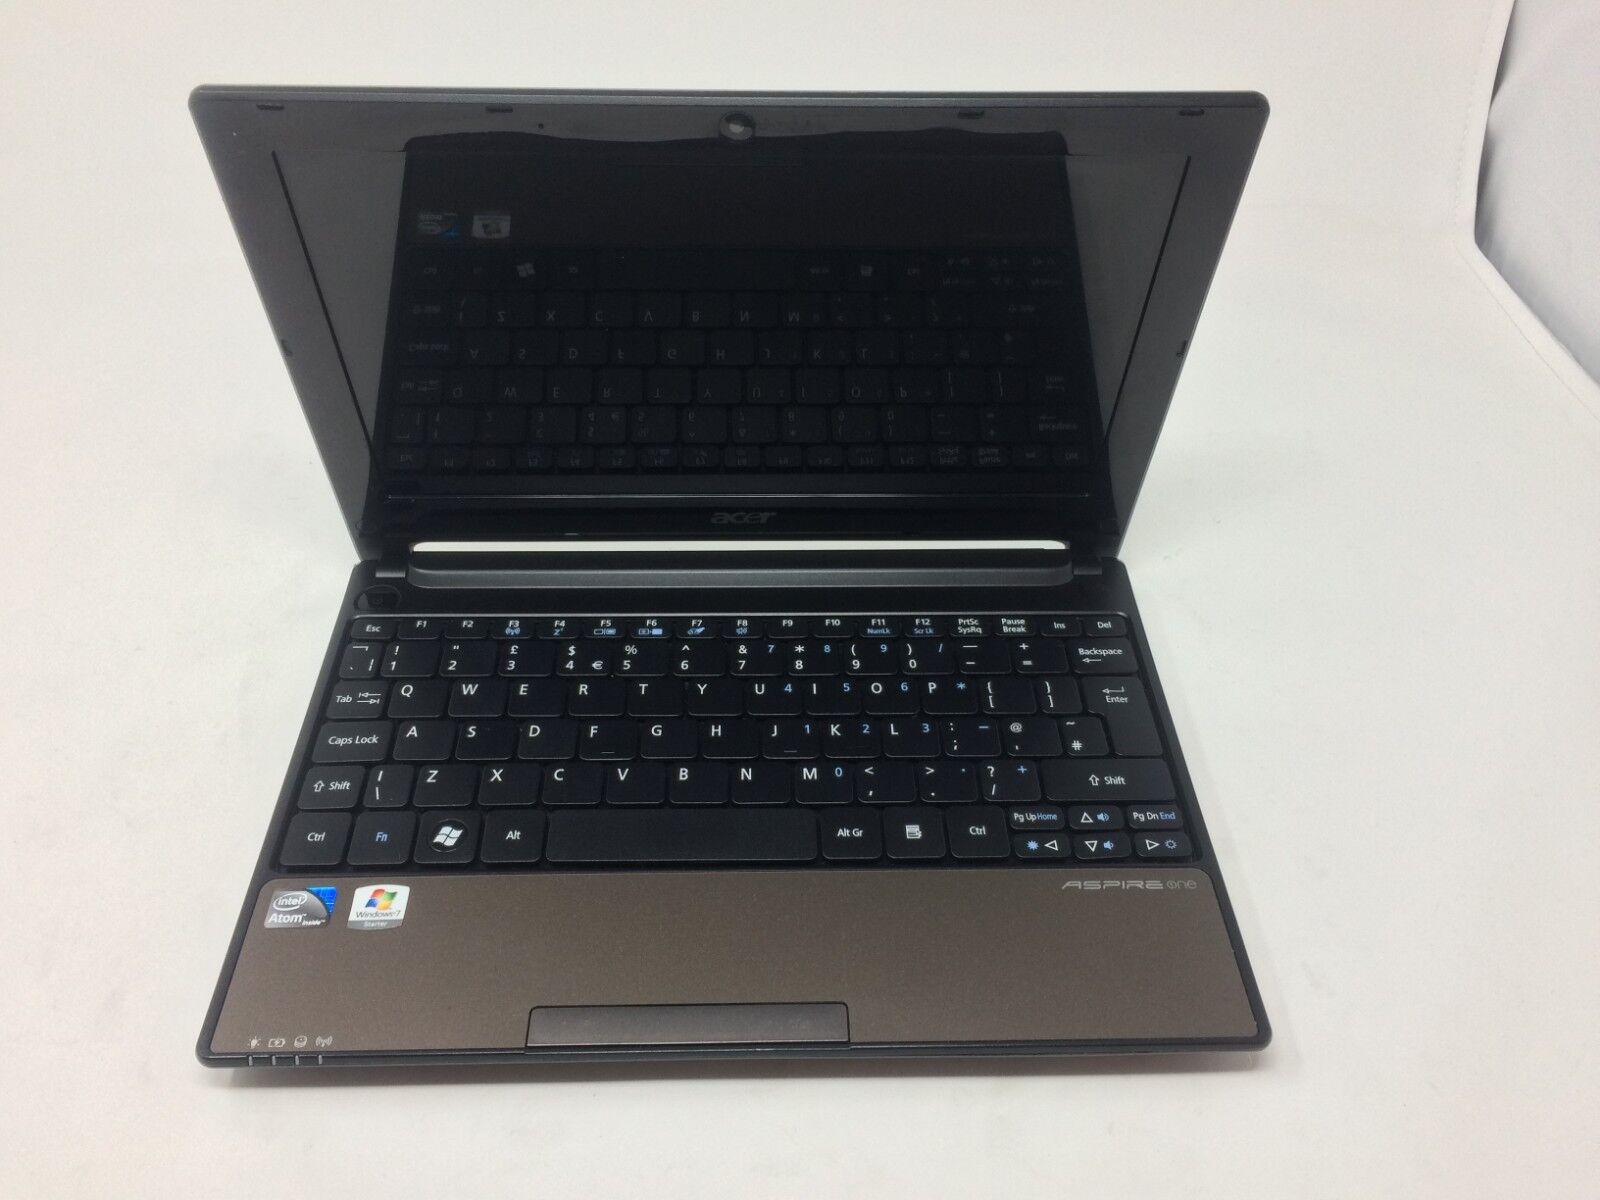 Acer Aspire One D255 Windows 8 X64 Driver Download